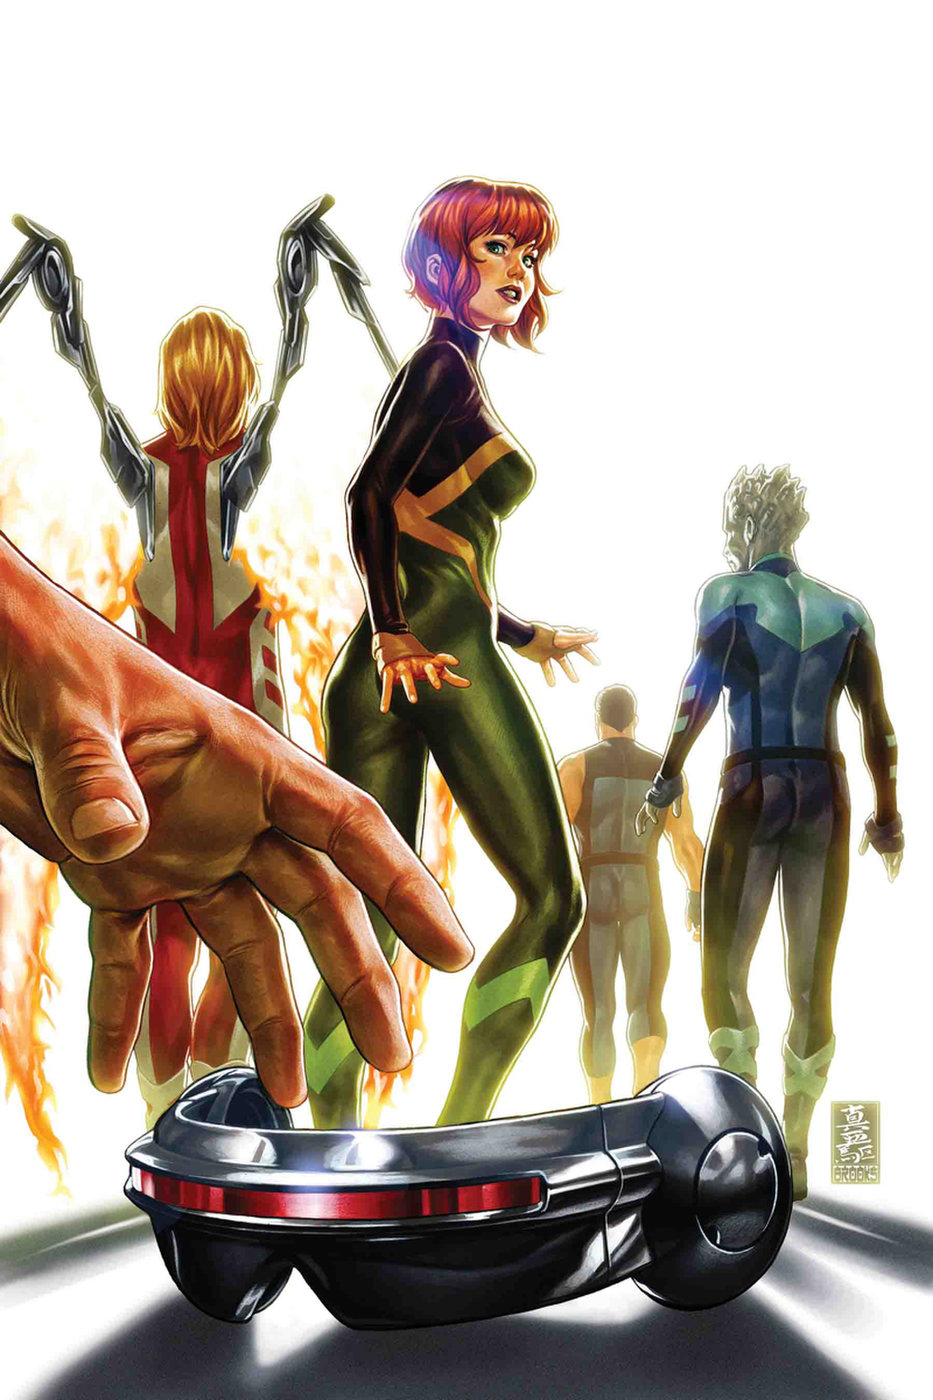 Five 5 Of Pentacles Tarot Card Meanings And Descriptions: Marvel Comics Universe, Extermination & X-Men Disassembled